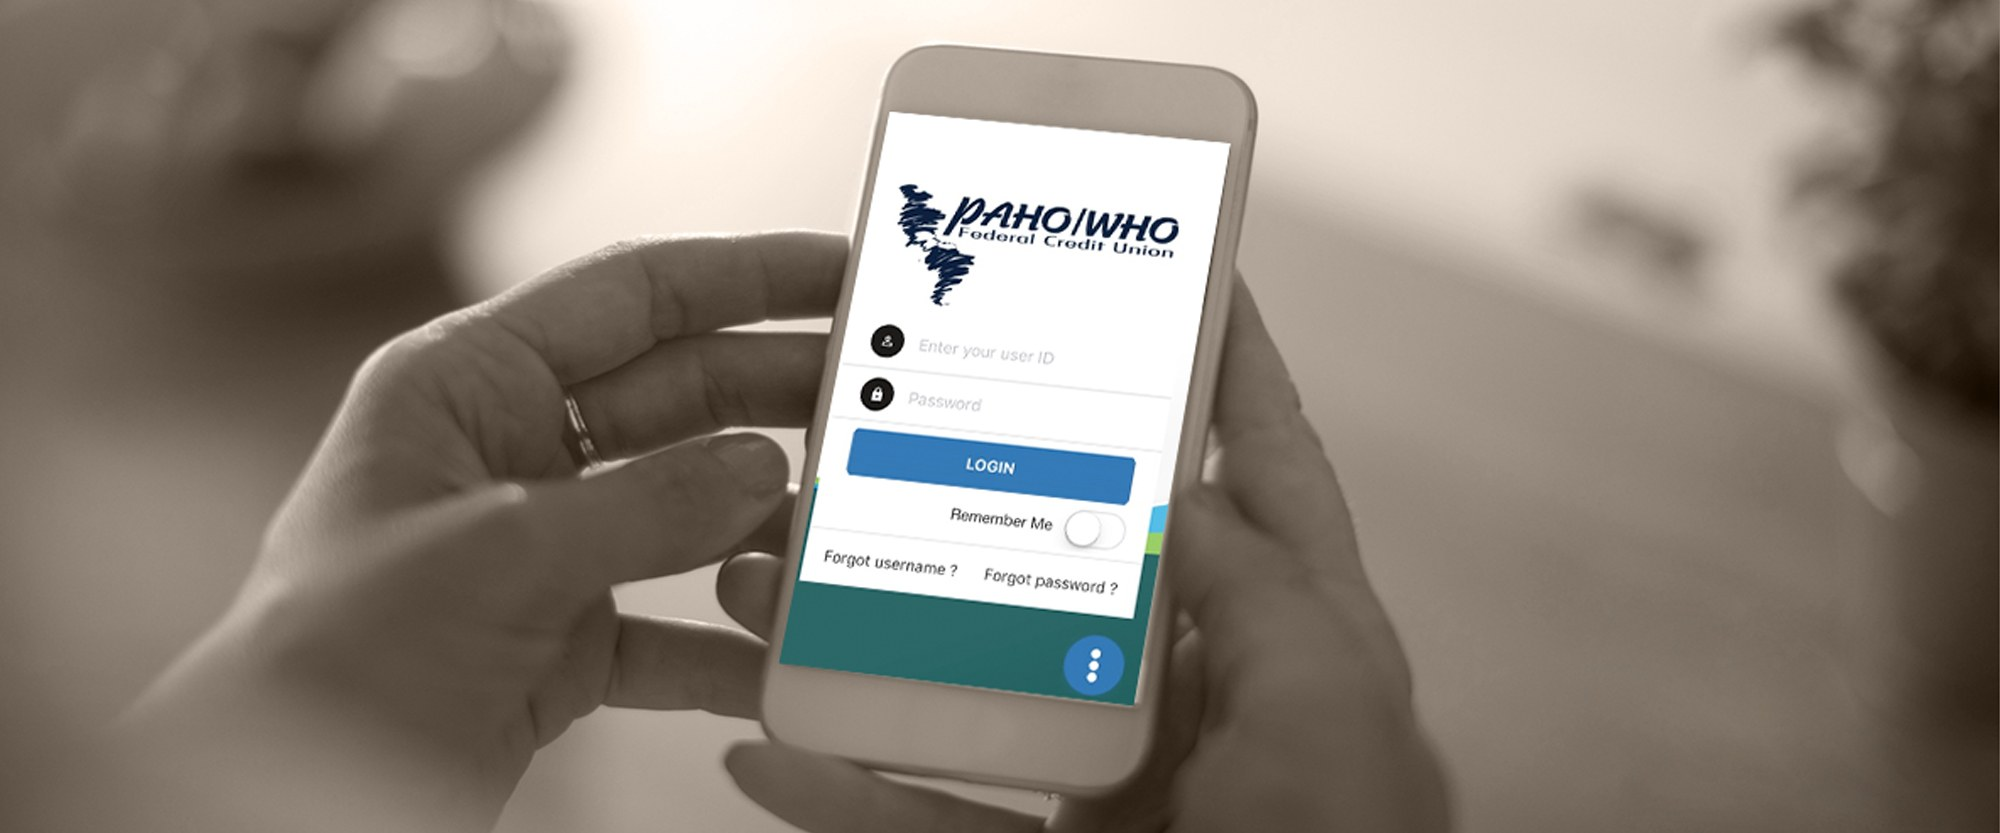 Person logging into PAHO/WHO Credit Union on mobile device